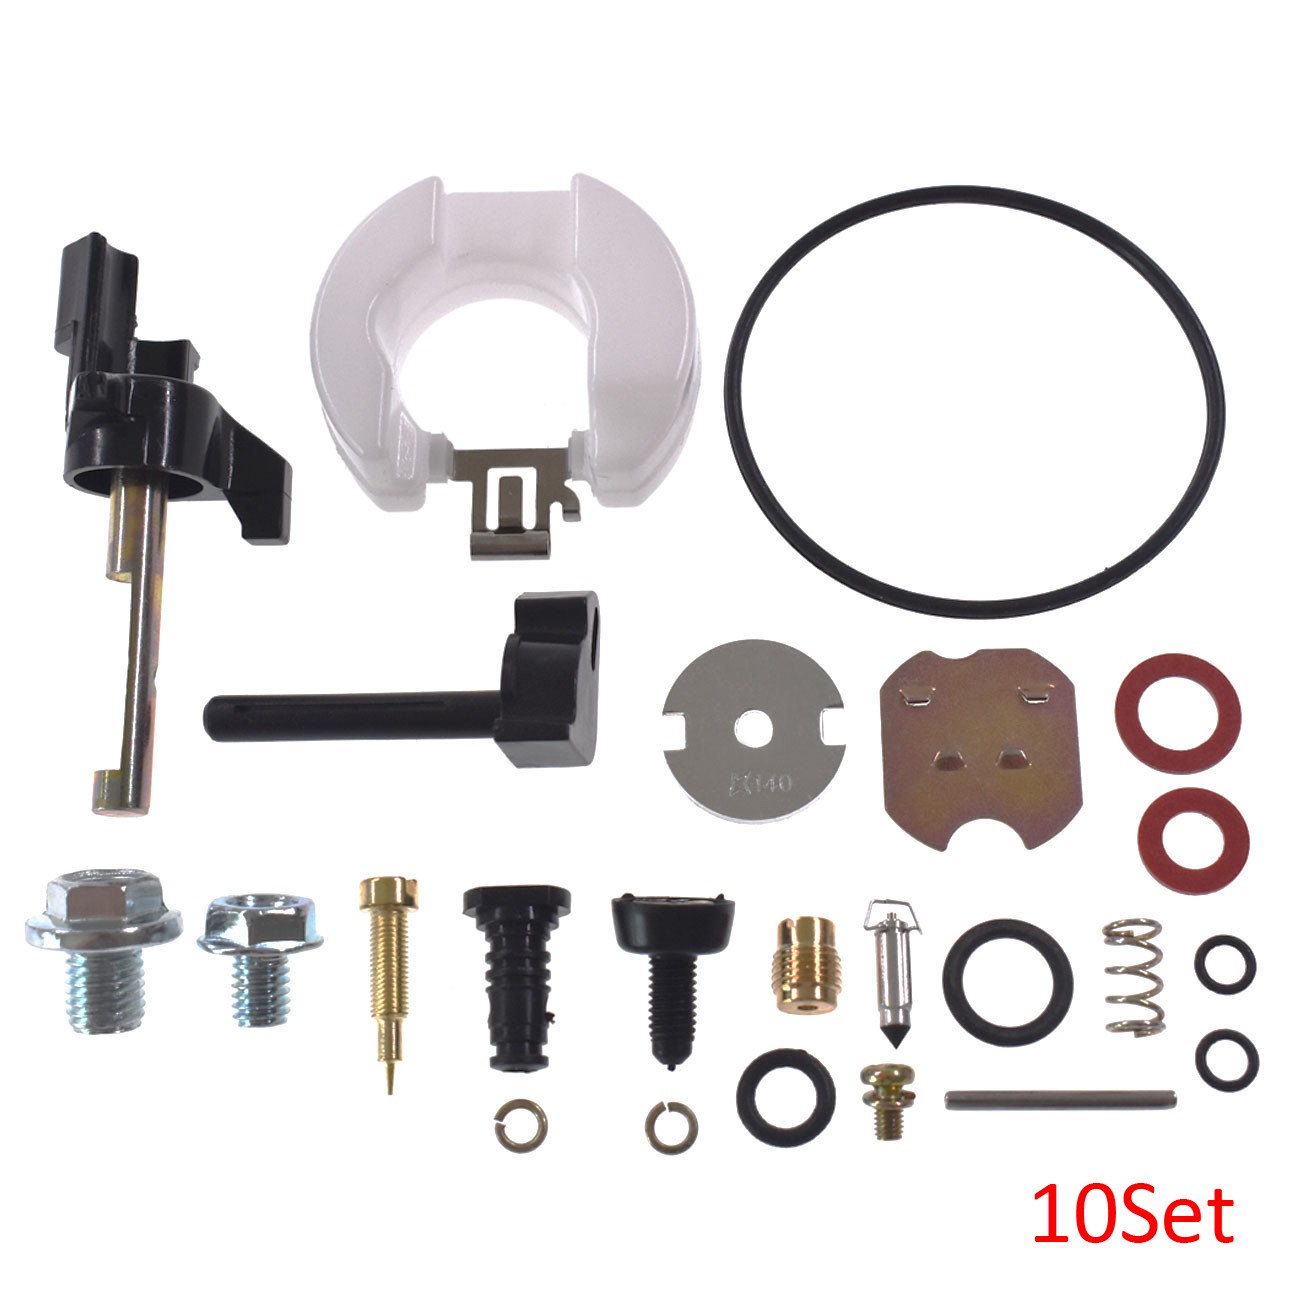 10Set Quality Carburetor Repair Kit Fits Honda GX160 GX200 Lawnmower  Replacement-in Chainsaws from Tools on Aliexpress.com | Alibaba Group